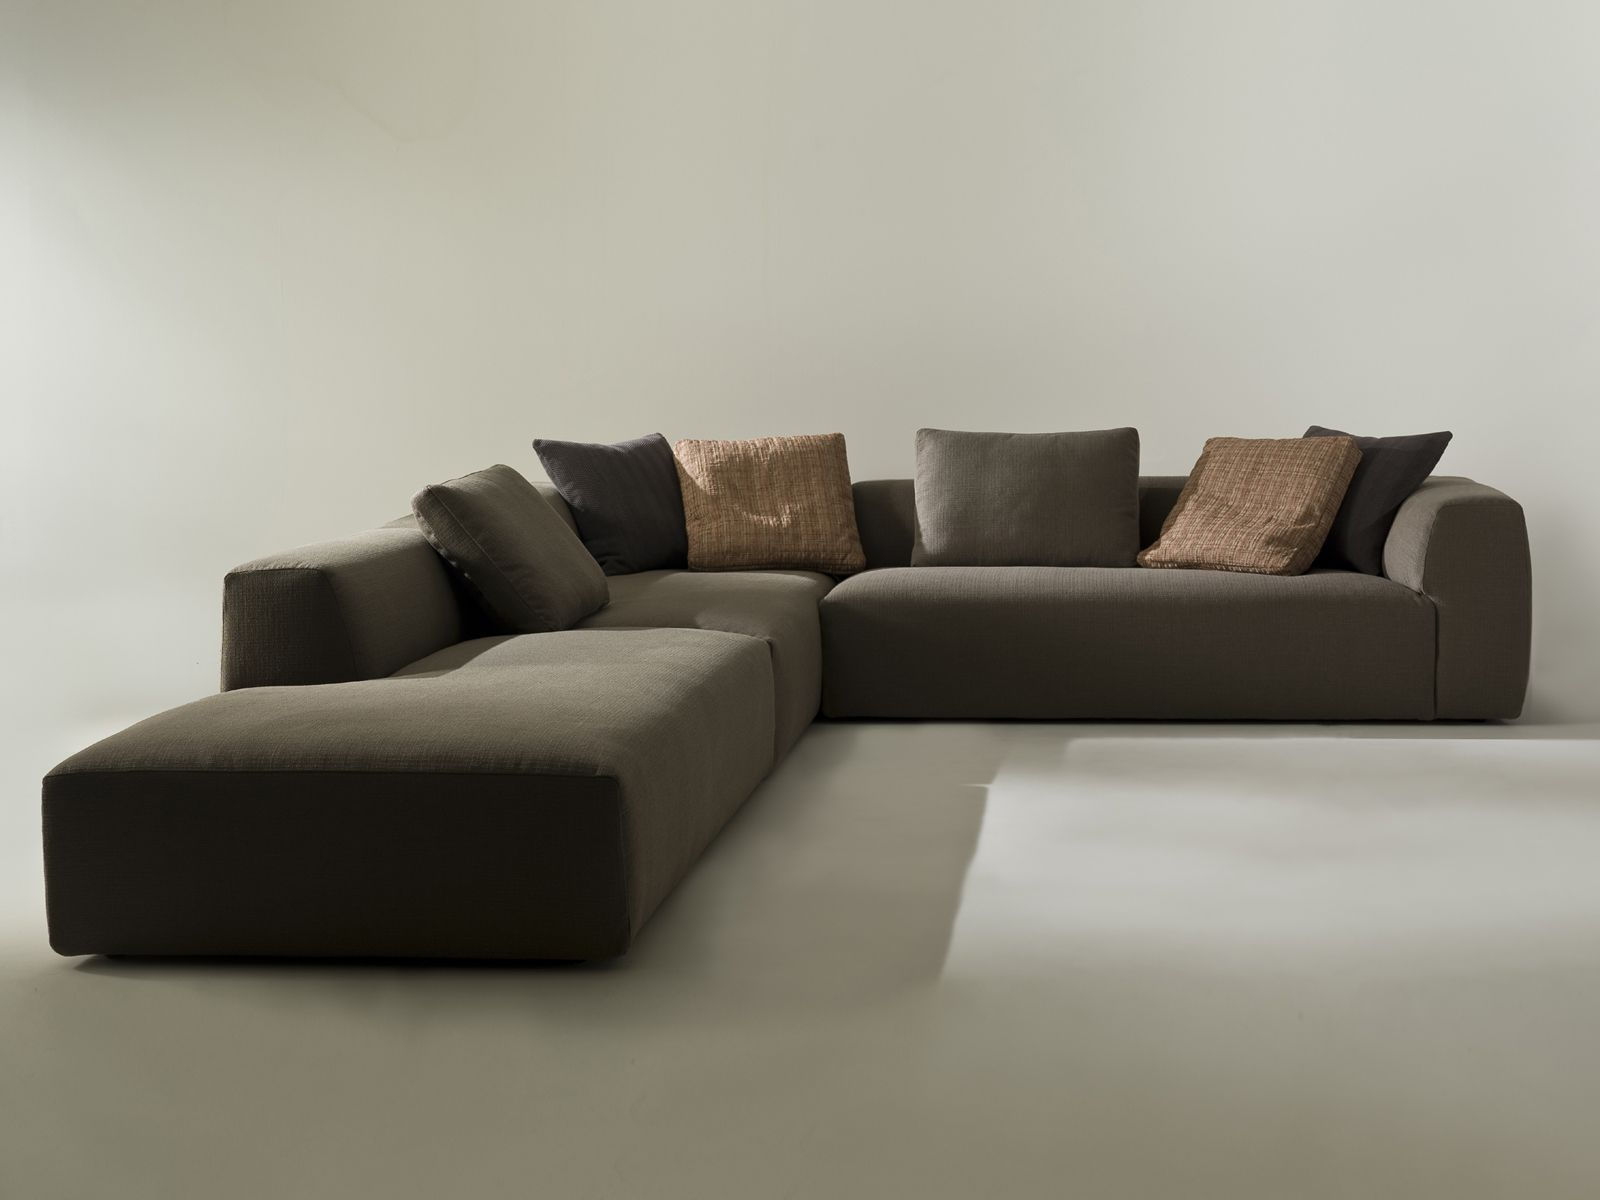 Corner Sofa Good Quality Buying Corner Sofa With Good Quality Attractive Home Design